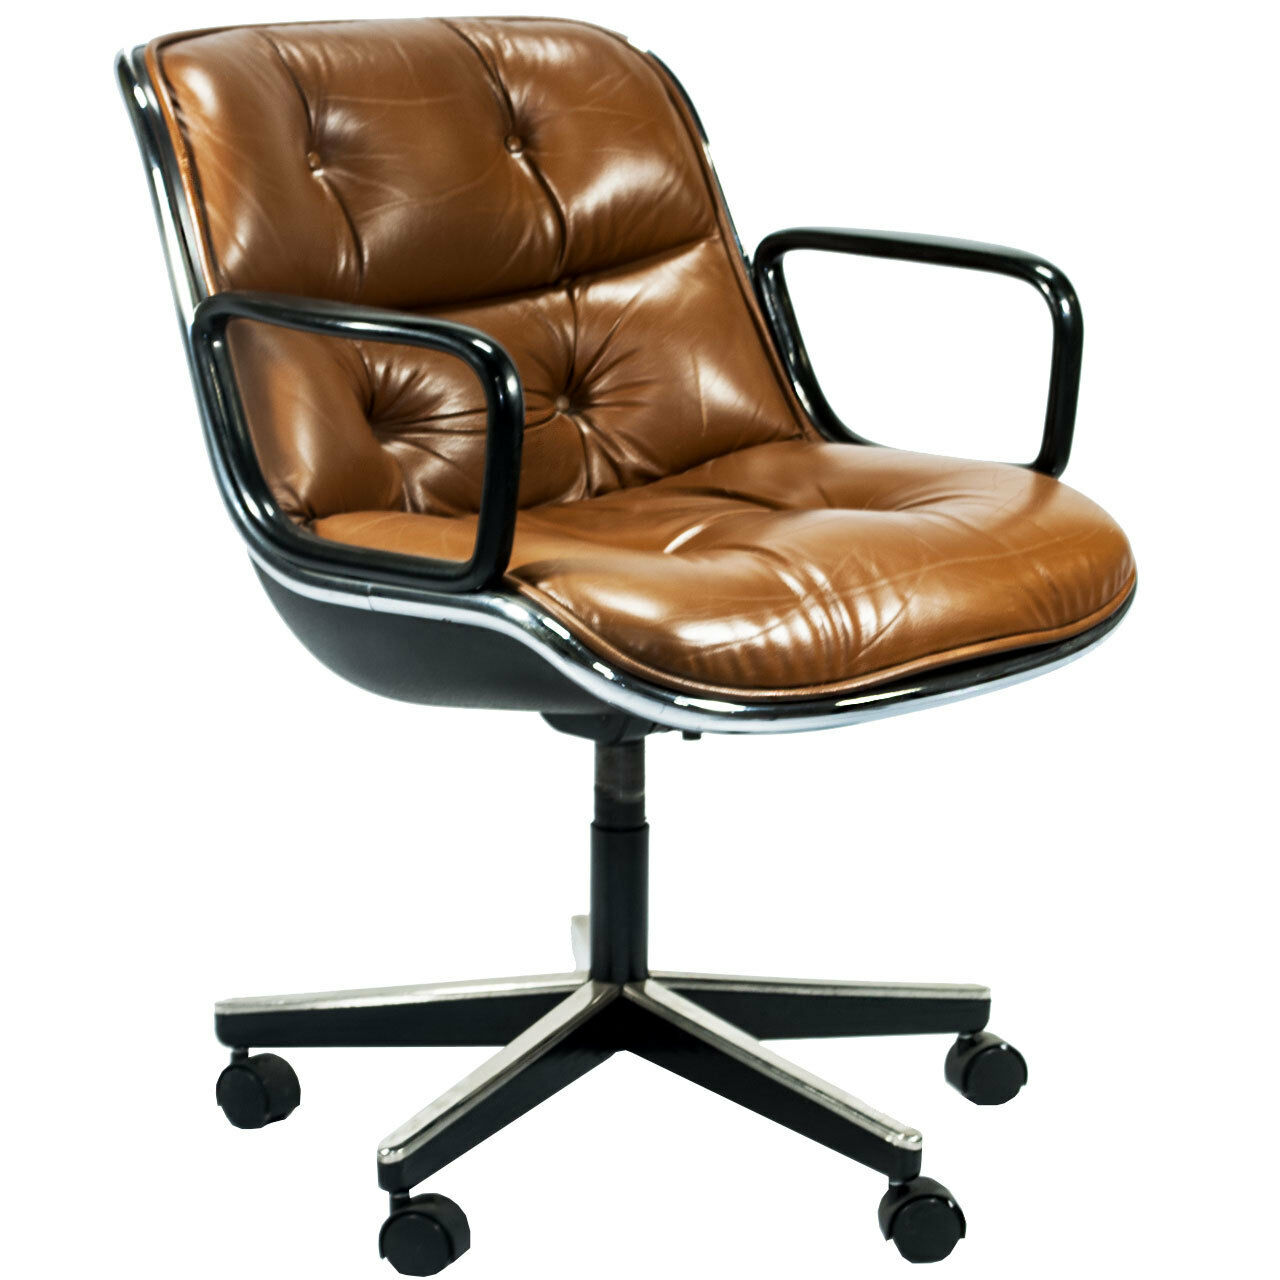 mid century charles pollock knoll leather swivel office chair ebay